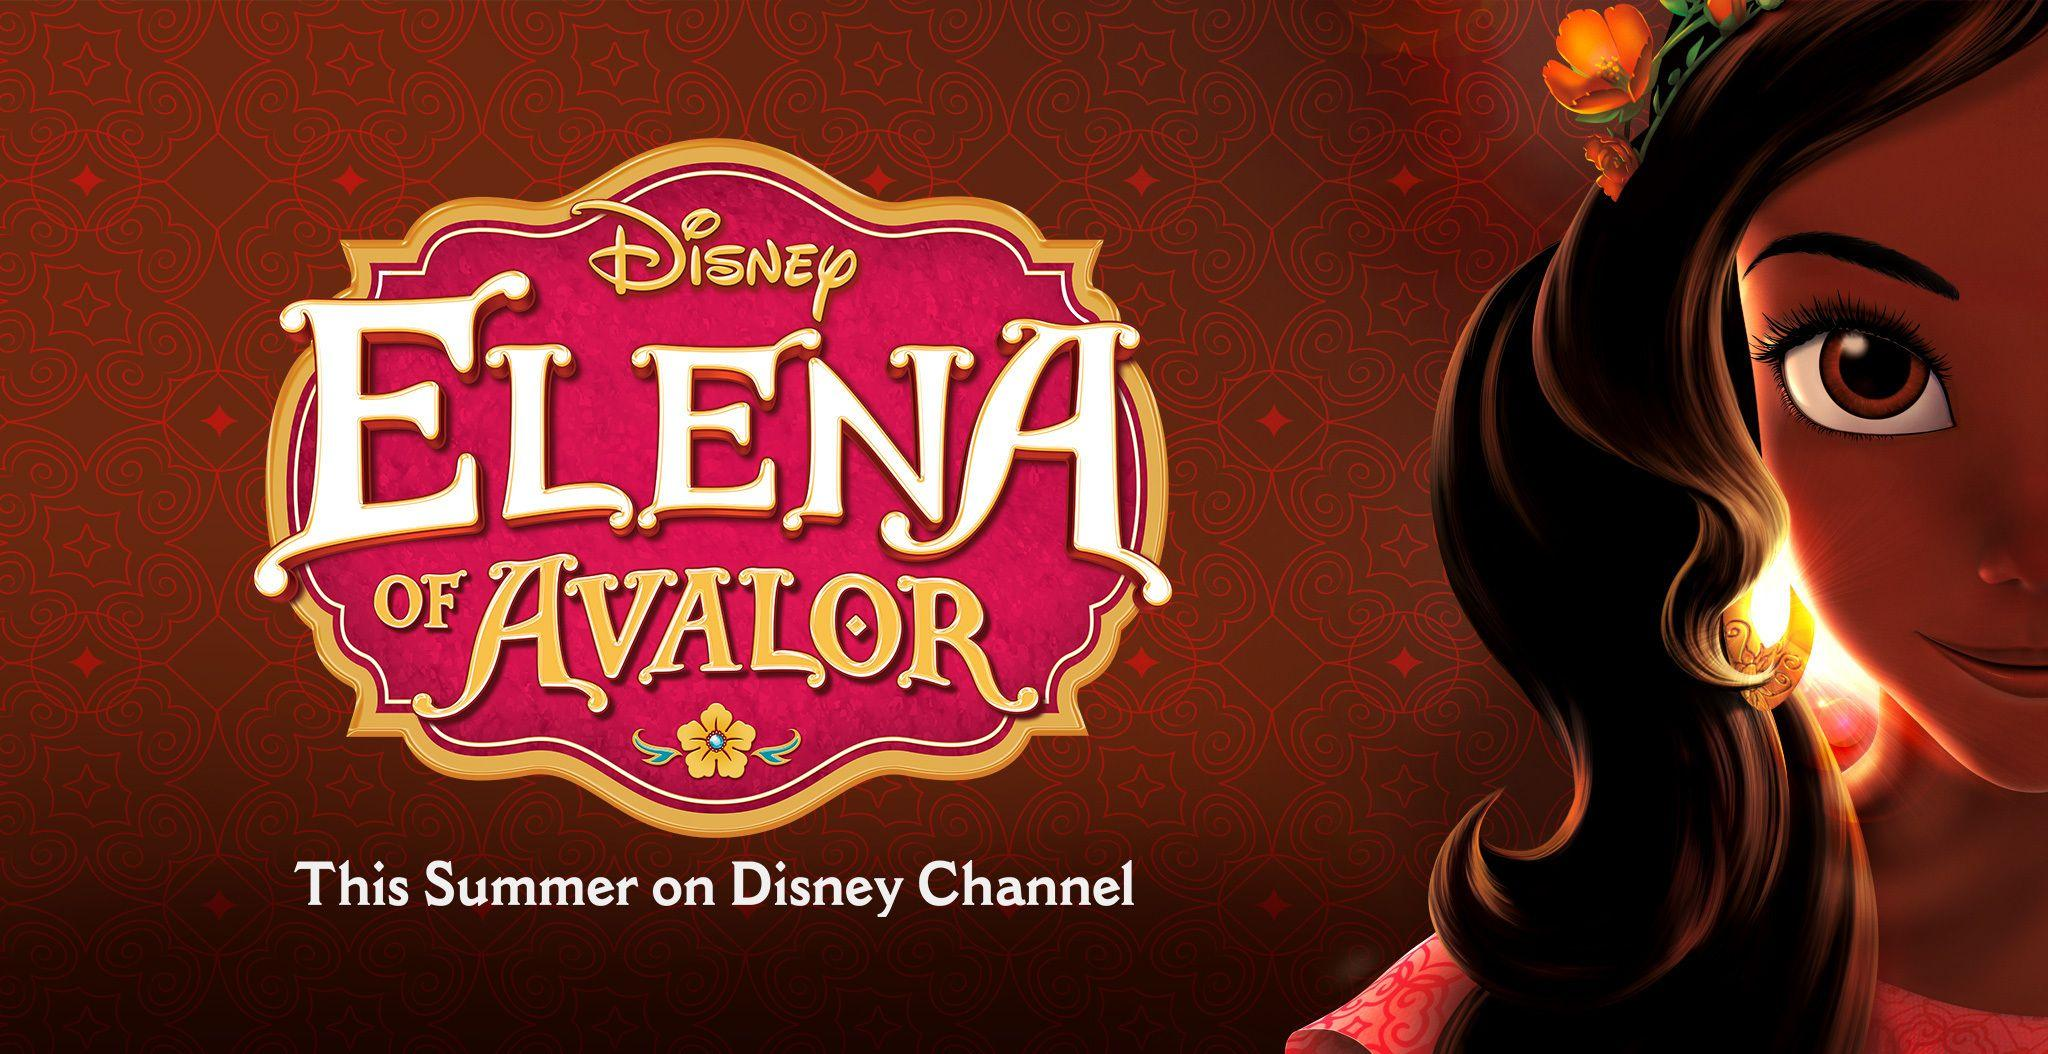 Elena of Avalor' premiere to feature sneak peeks at 'Frozen' LEGO